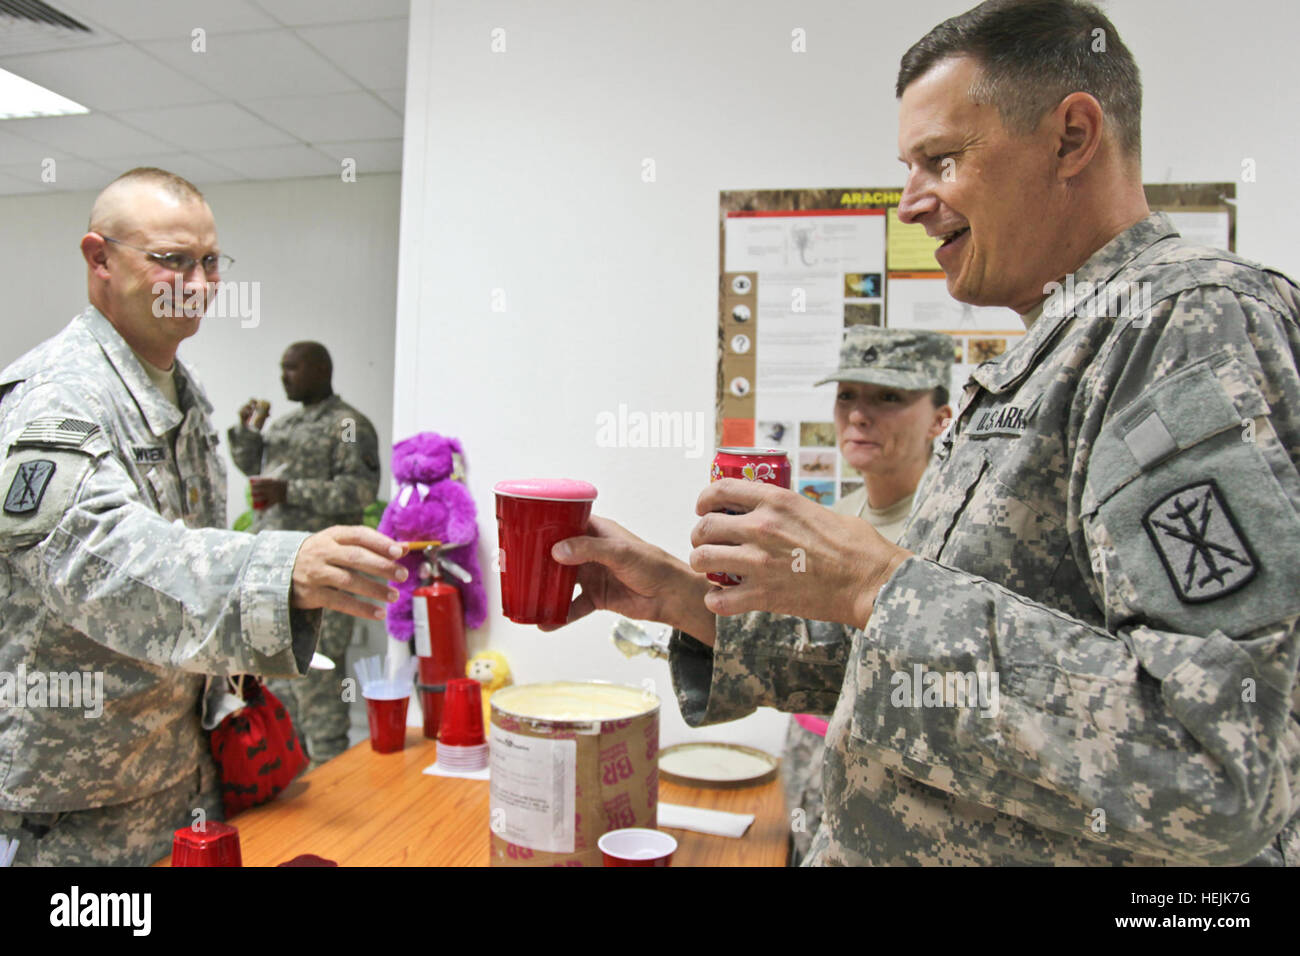 Maj. Michael King, chaplain, pushes the envelope of his strawberry soda float making skills while Maj. blank Townsend - Stock Image